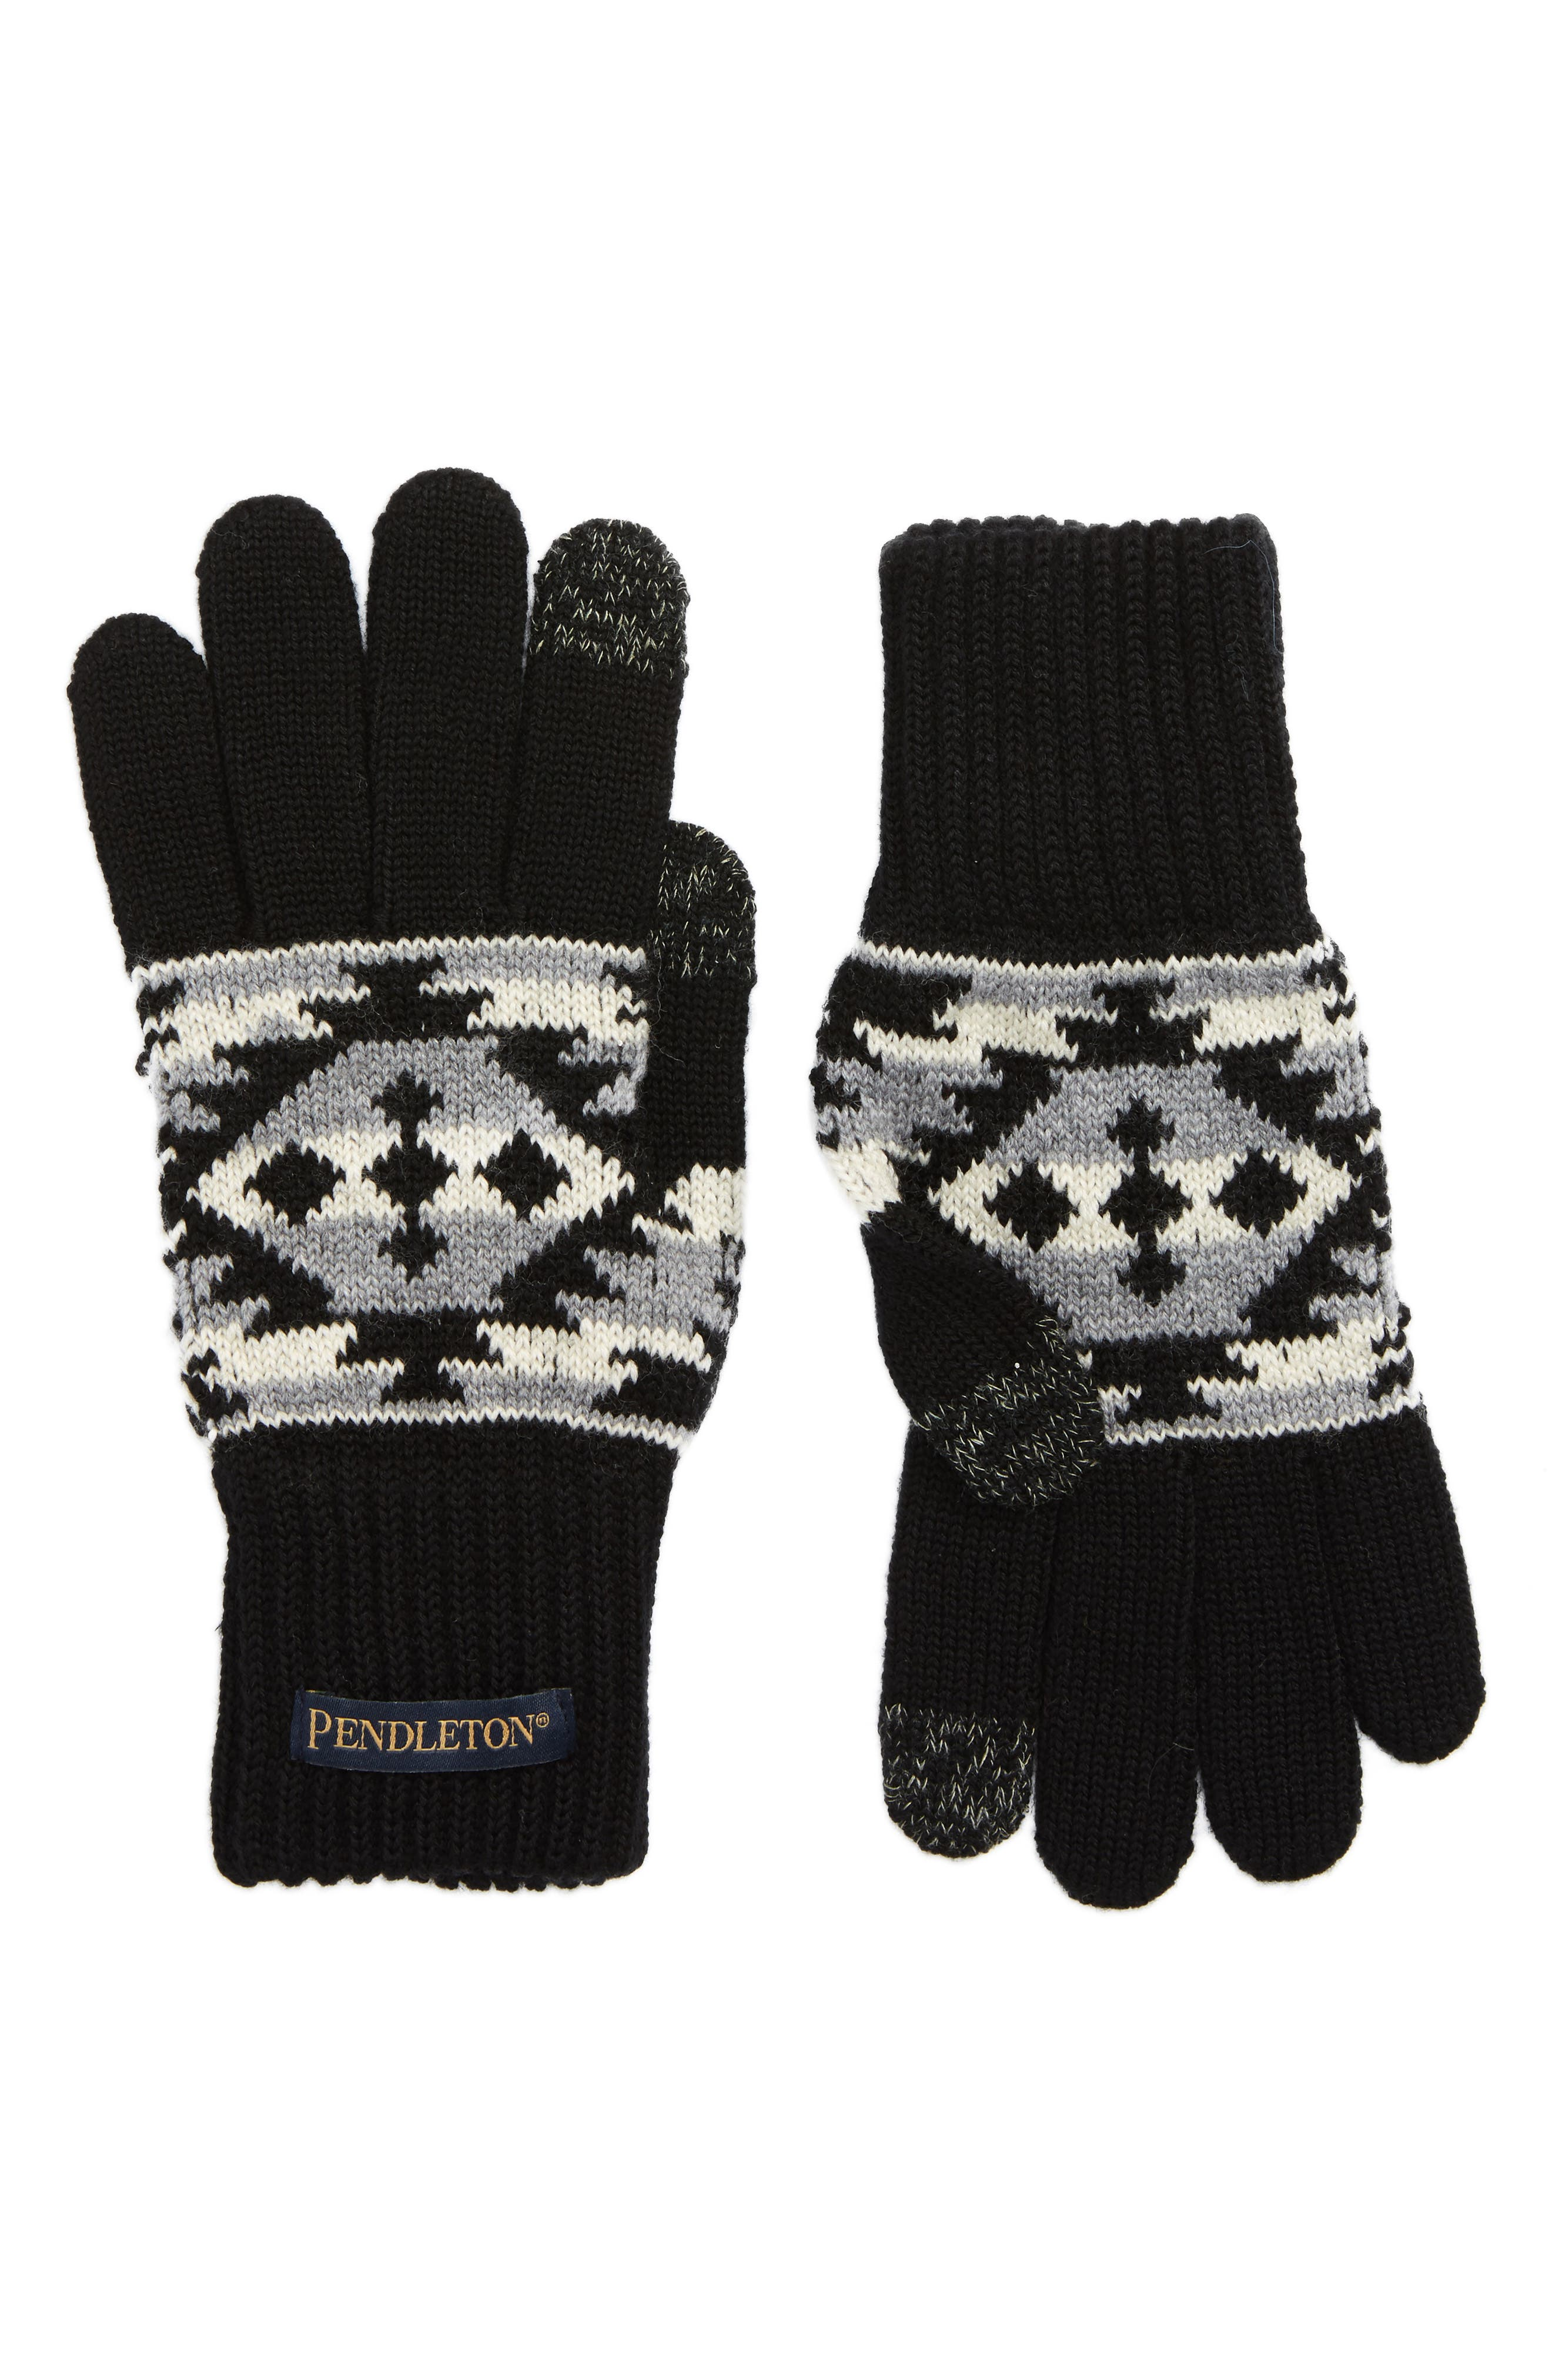 Alternate Image 1 Selected - Pendleton Texting Gloves